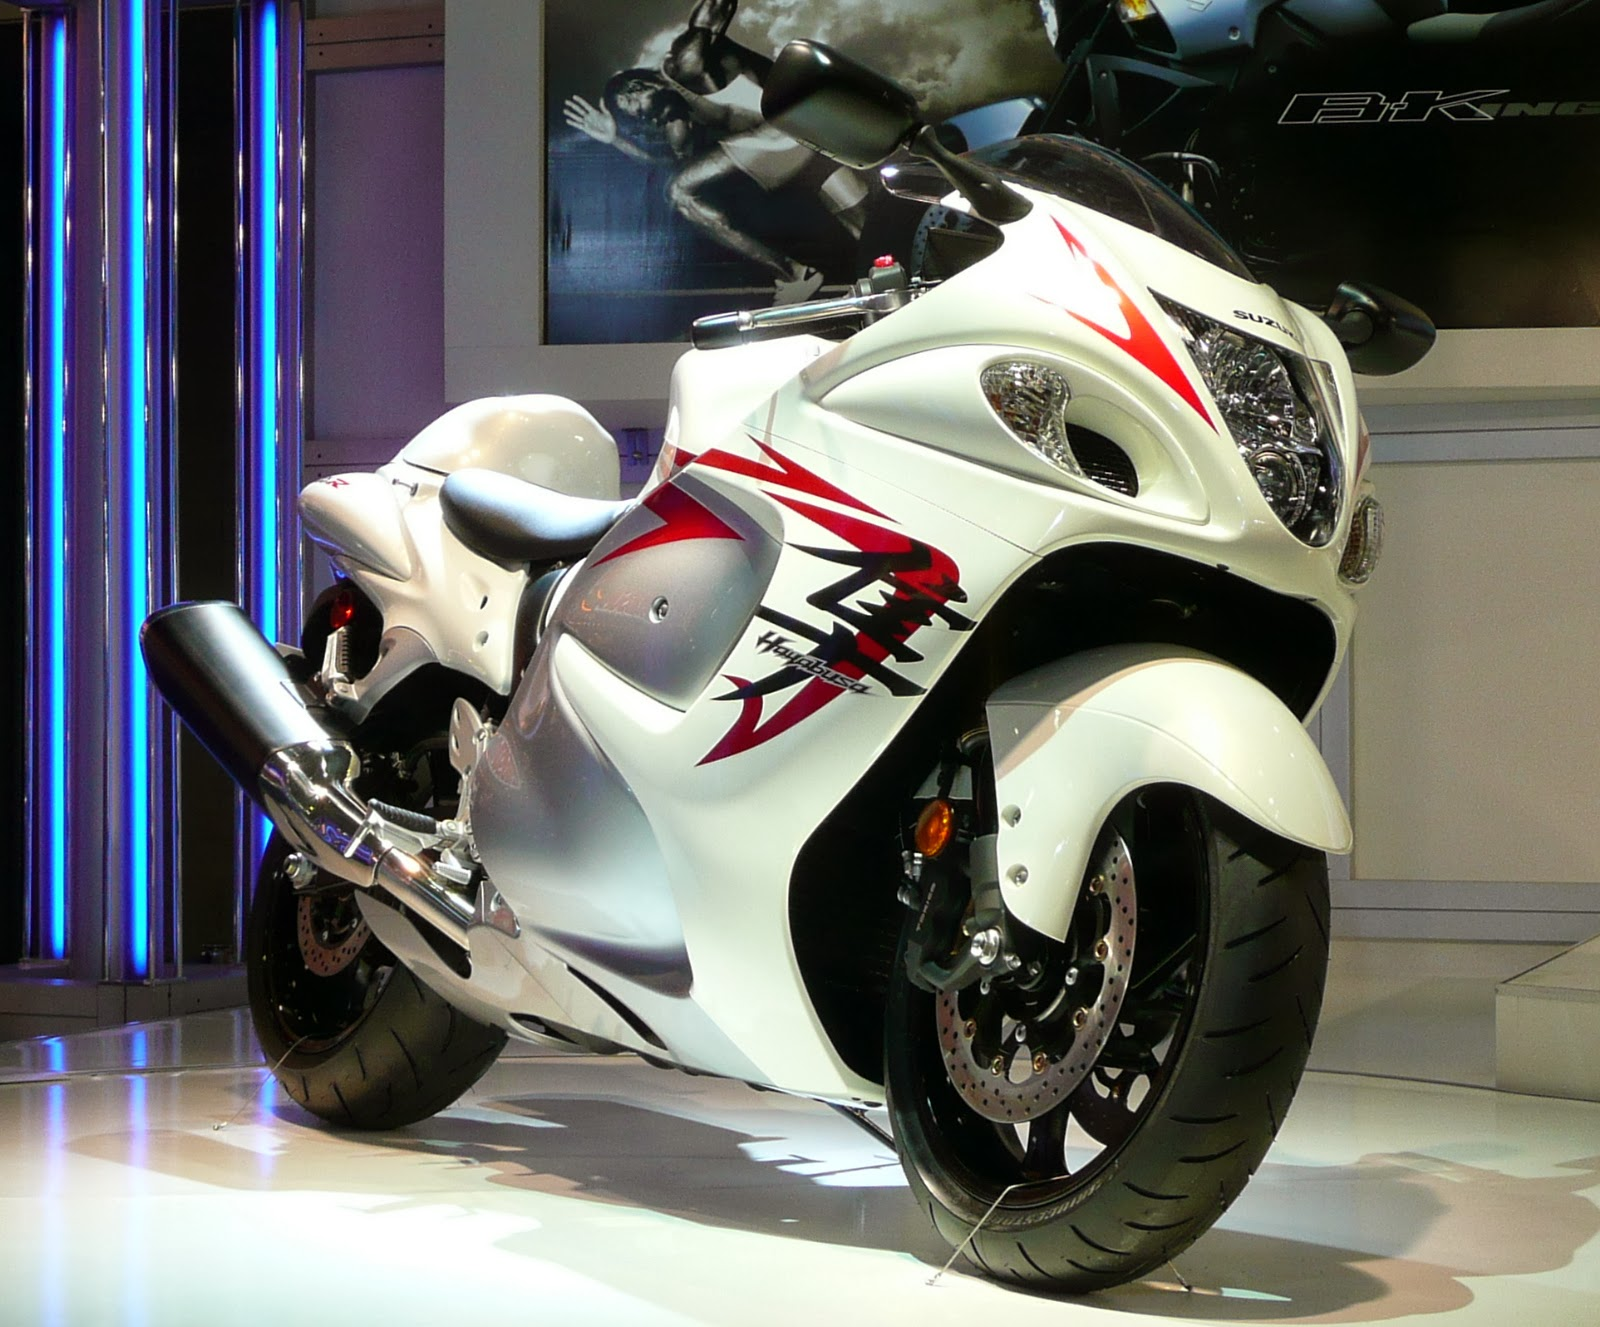 Suzuki hayabusa is a sport bike motorcycle made by suzuki since 1999 it immediately won acclaim as the world s fastest production motorcycle with a top